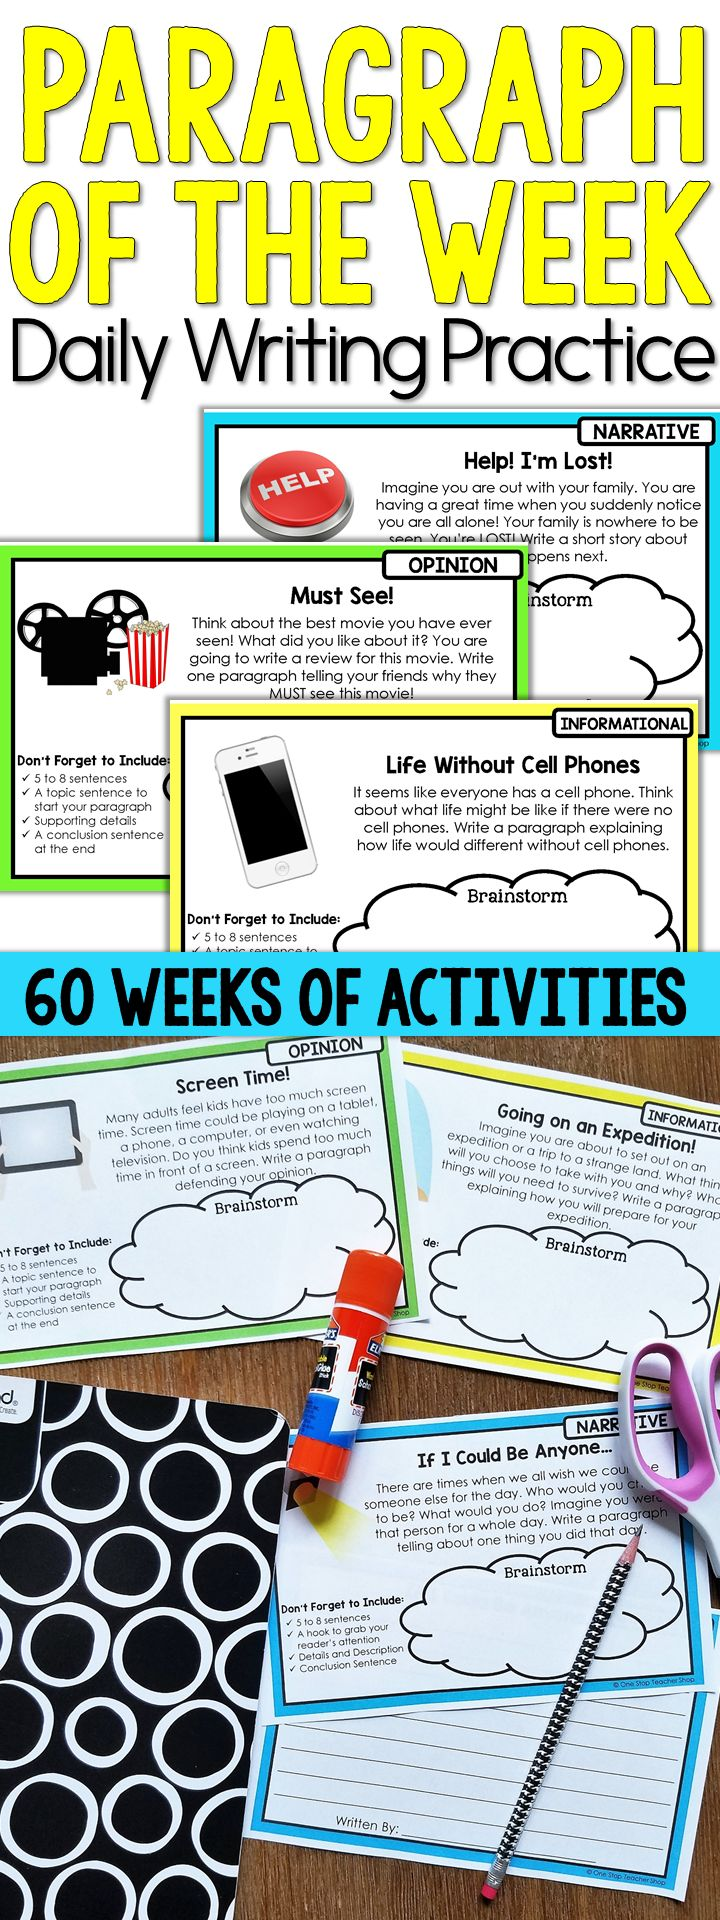 Editable Paragraph of the Week for daily paragraph writing practice! 60 writing prompt activities that make writing fun! Includes rubrics, drafting pages, revising and editing checklists, and tons of high-interest writing prompts.